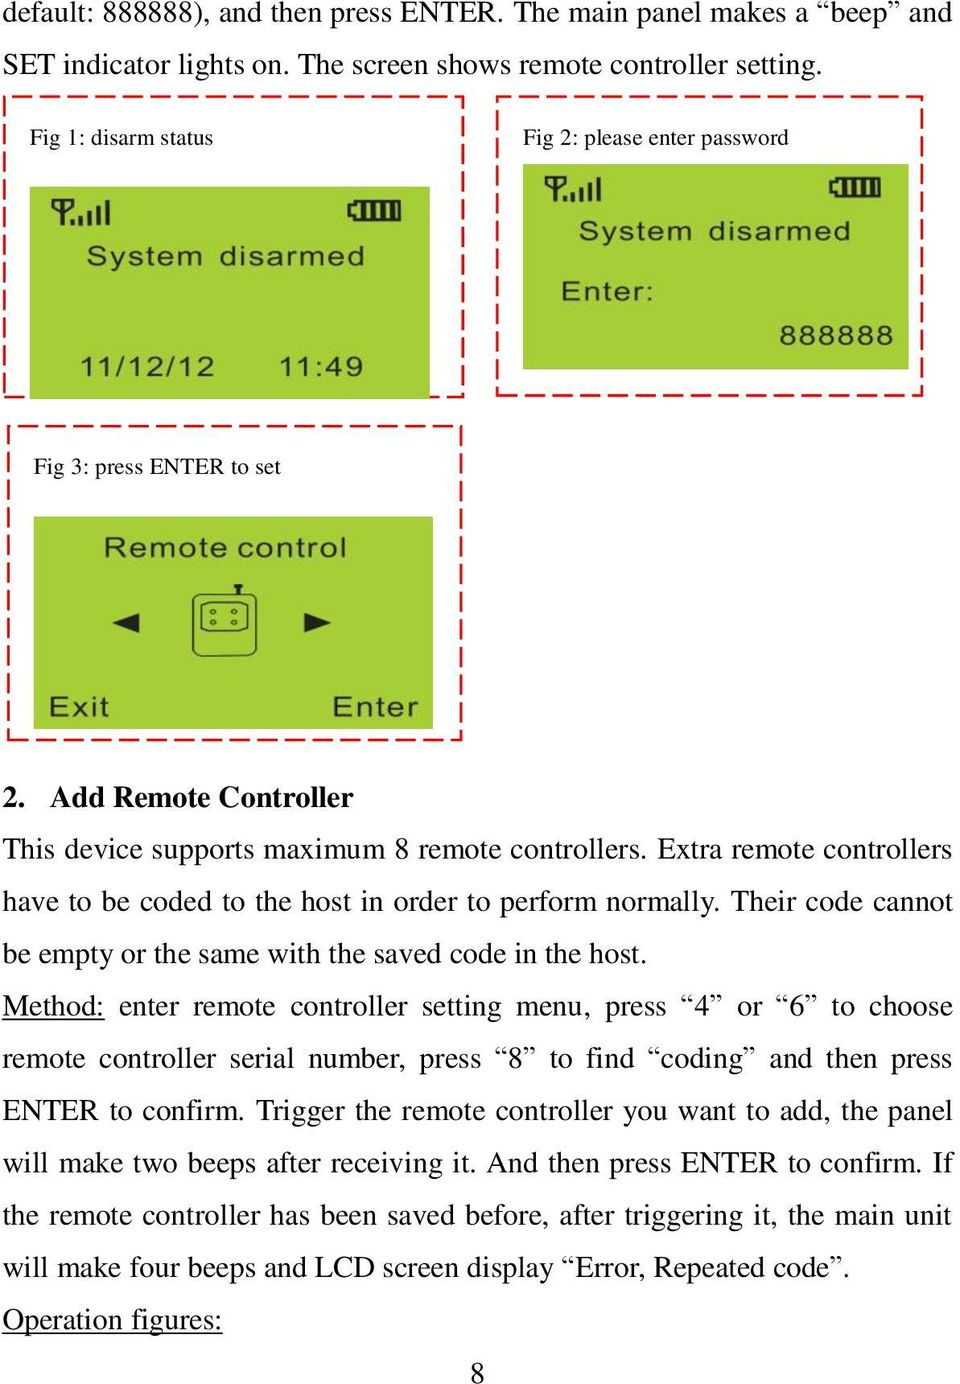 Extra remote controllers have to be coded to the host in order to perform normally. Their code cannot be empty or the same with the saved code in the host.